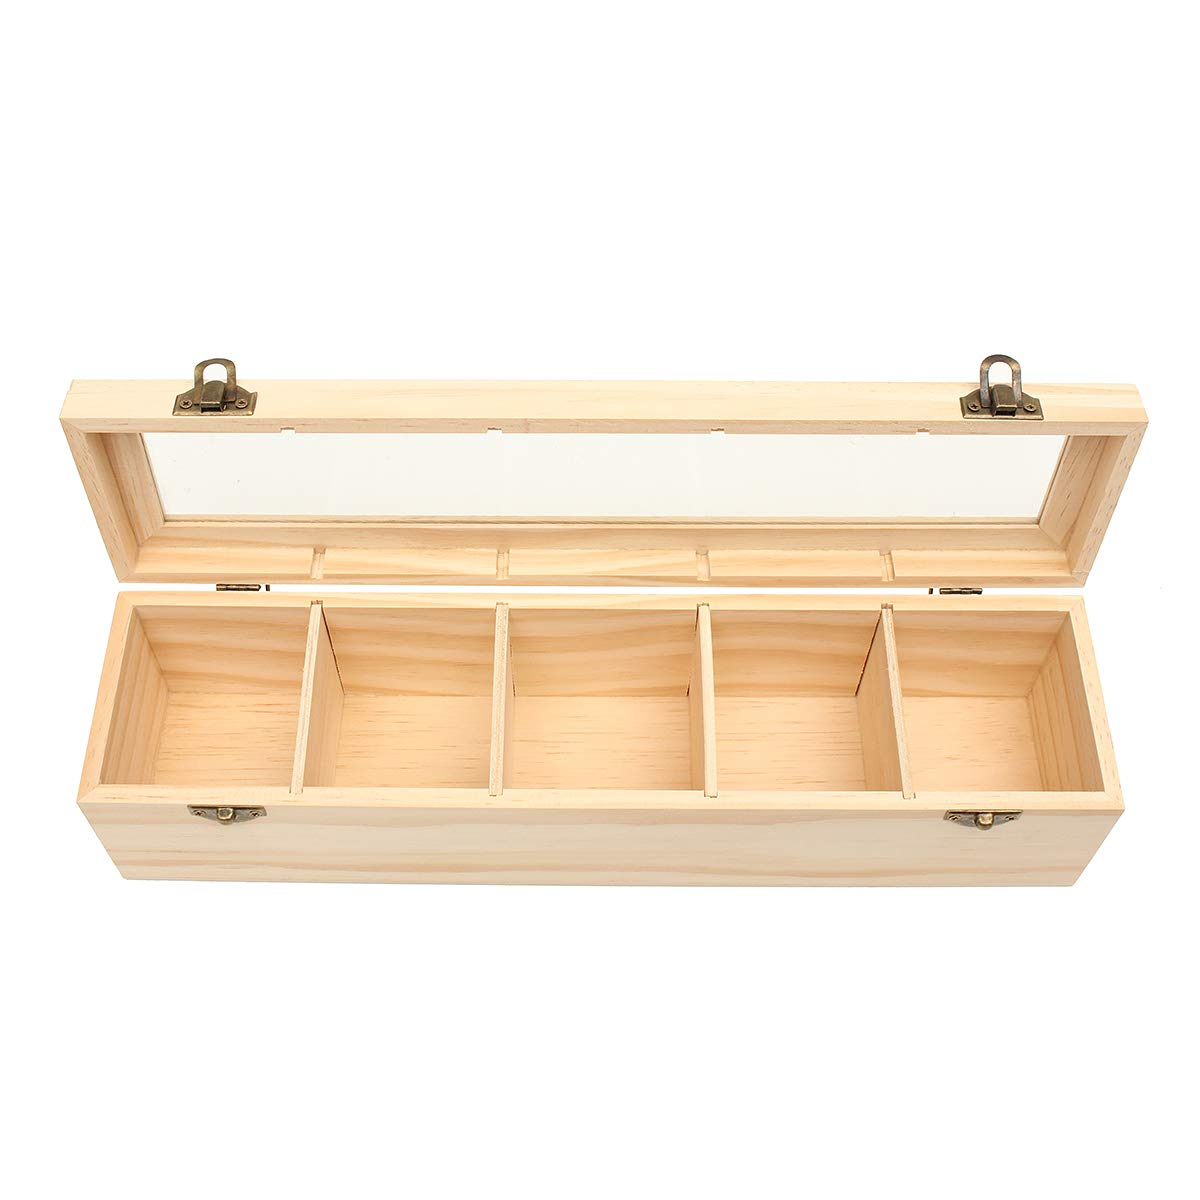 WCHAOEN 5 Compartments Plain Wooden Tea Box Bag Caddy Storage Display Container With Glass Lid Accessories Tool